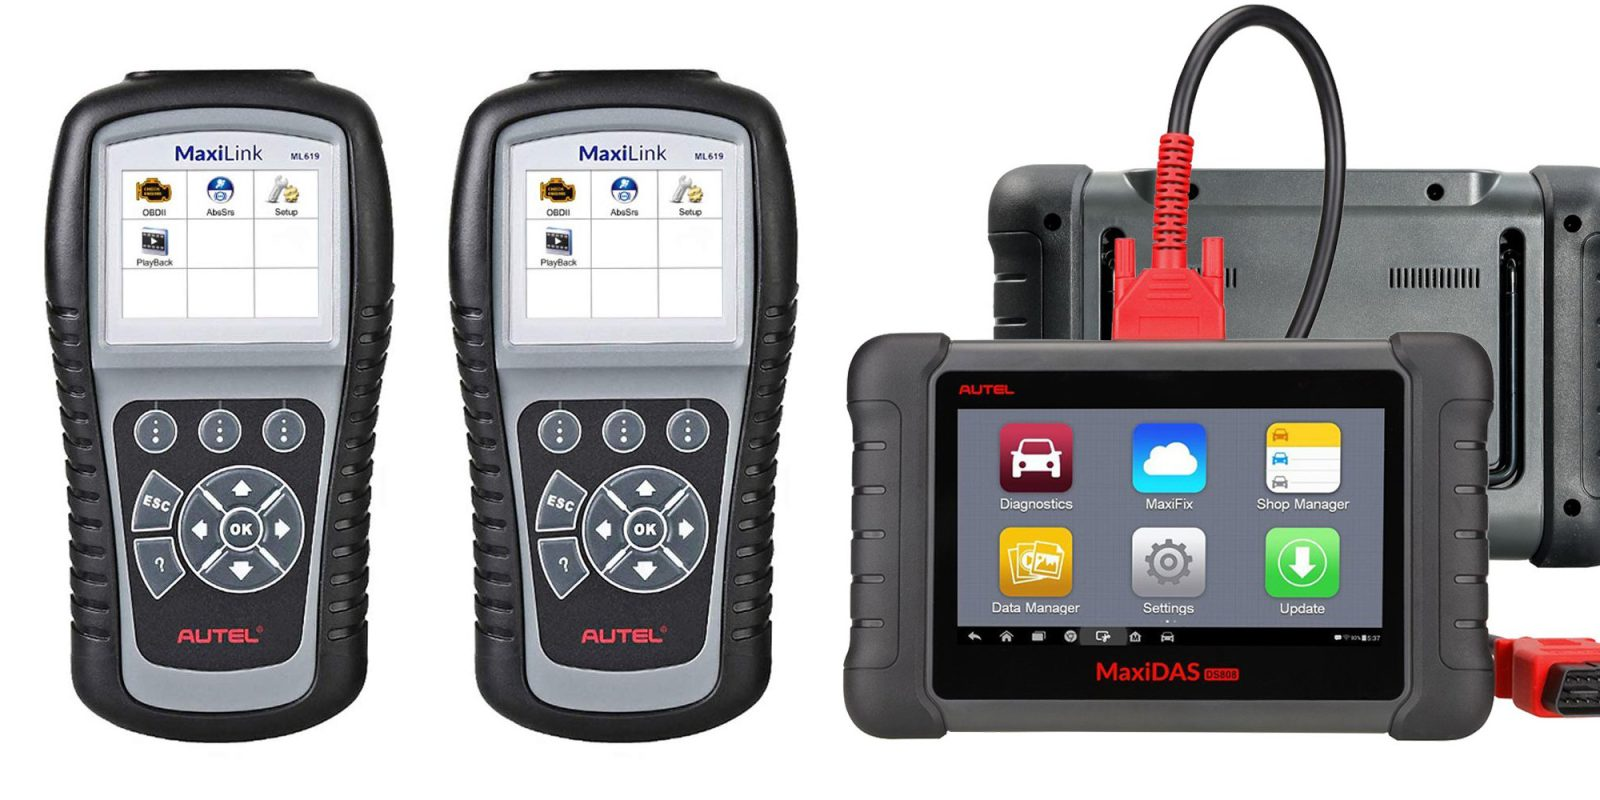 Amazon offers up to 30% off Autel Pro Automotive Scanners, deals from $25.50